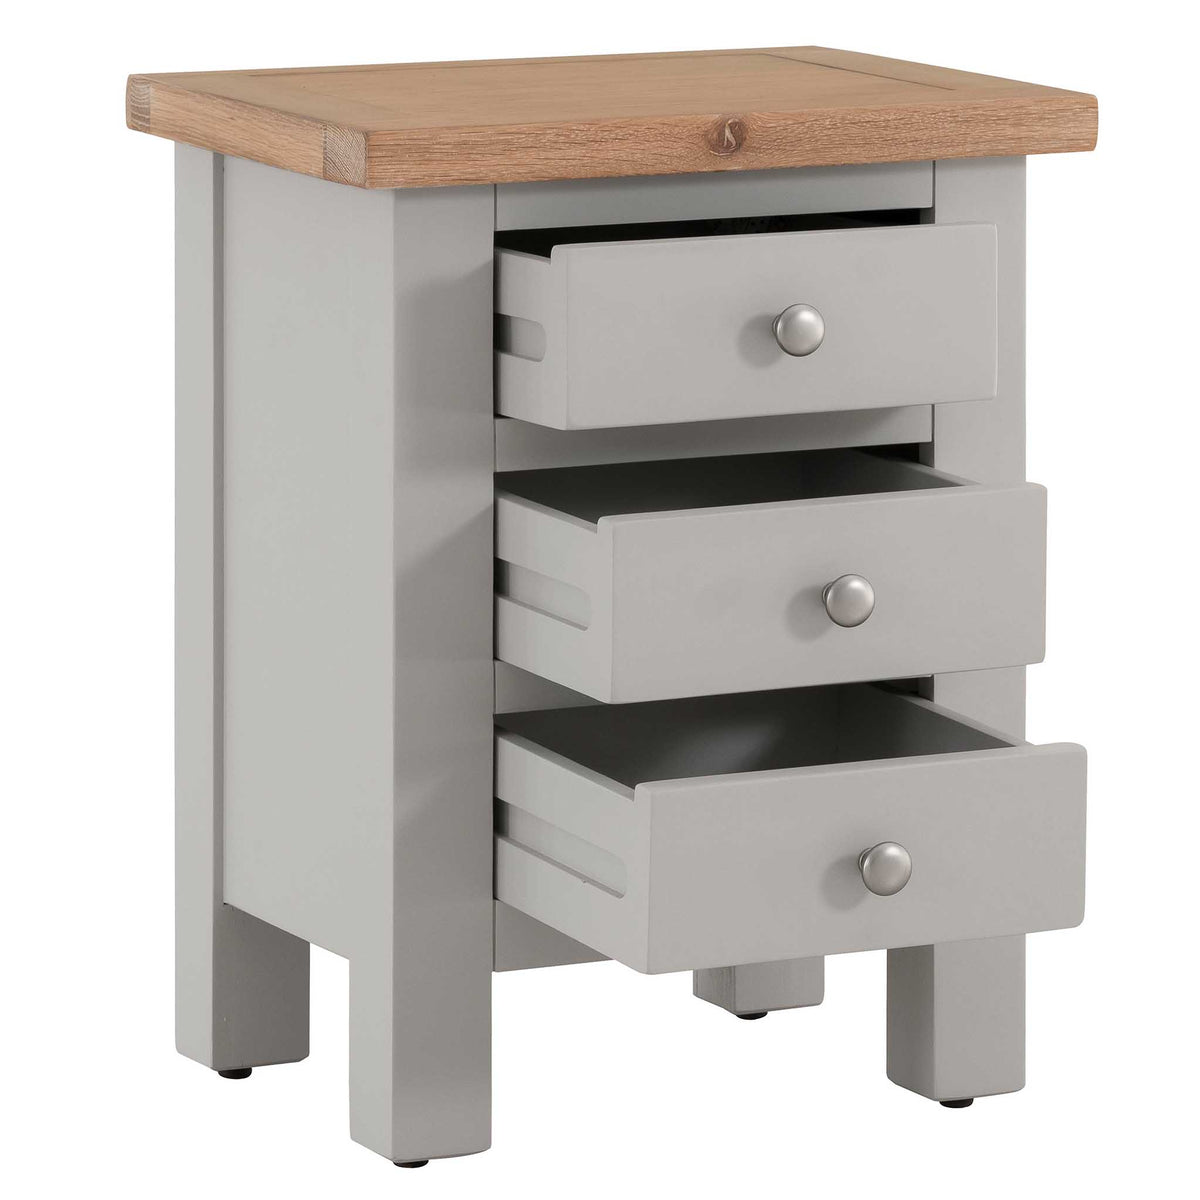 3 open drawer view of Charlestown Grey Bedside Table with Oak Top by Roseland Furniture